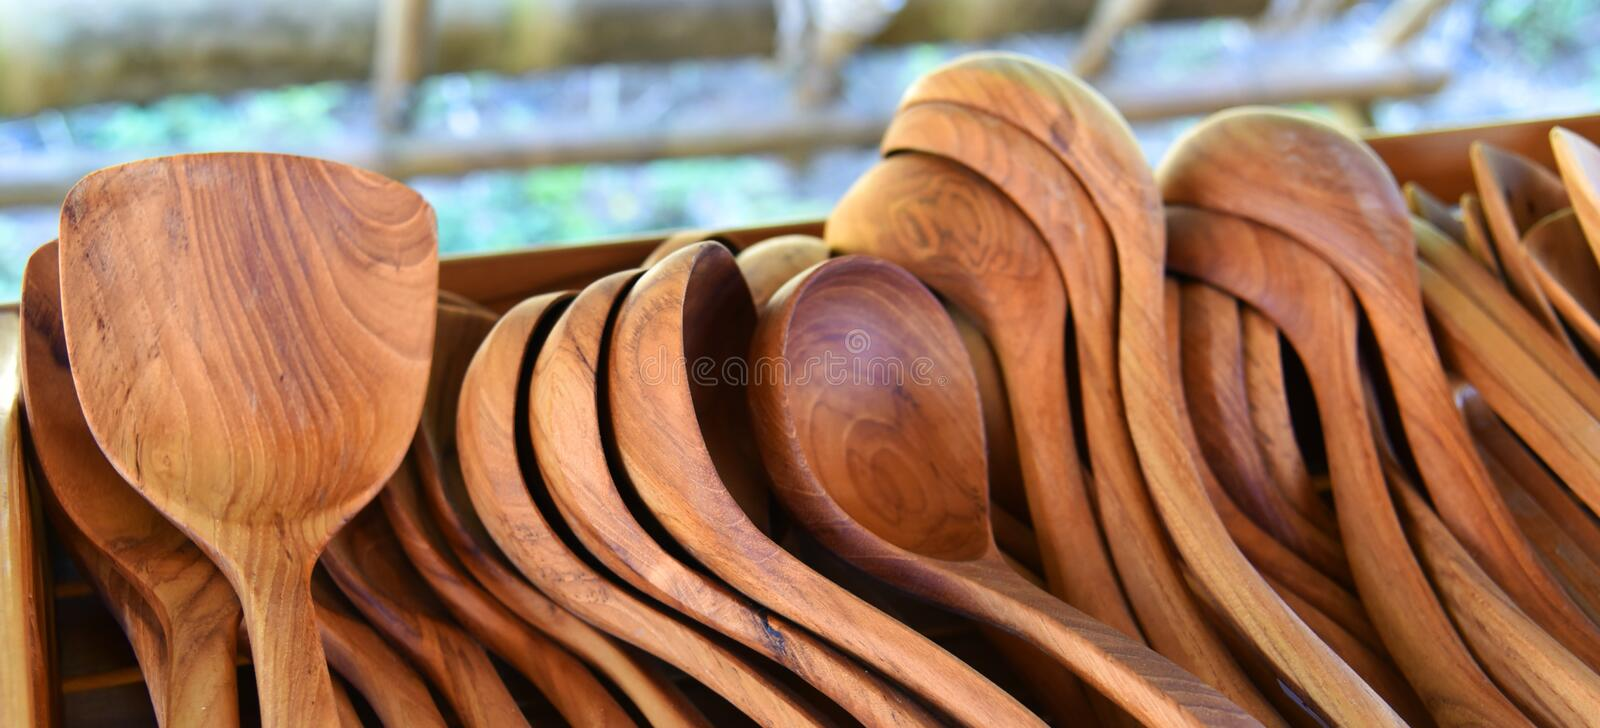 Wooden spoon. New many wooden spoon For Sell stock images